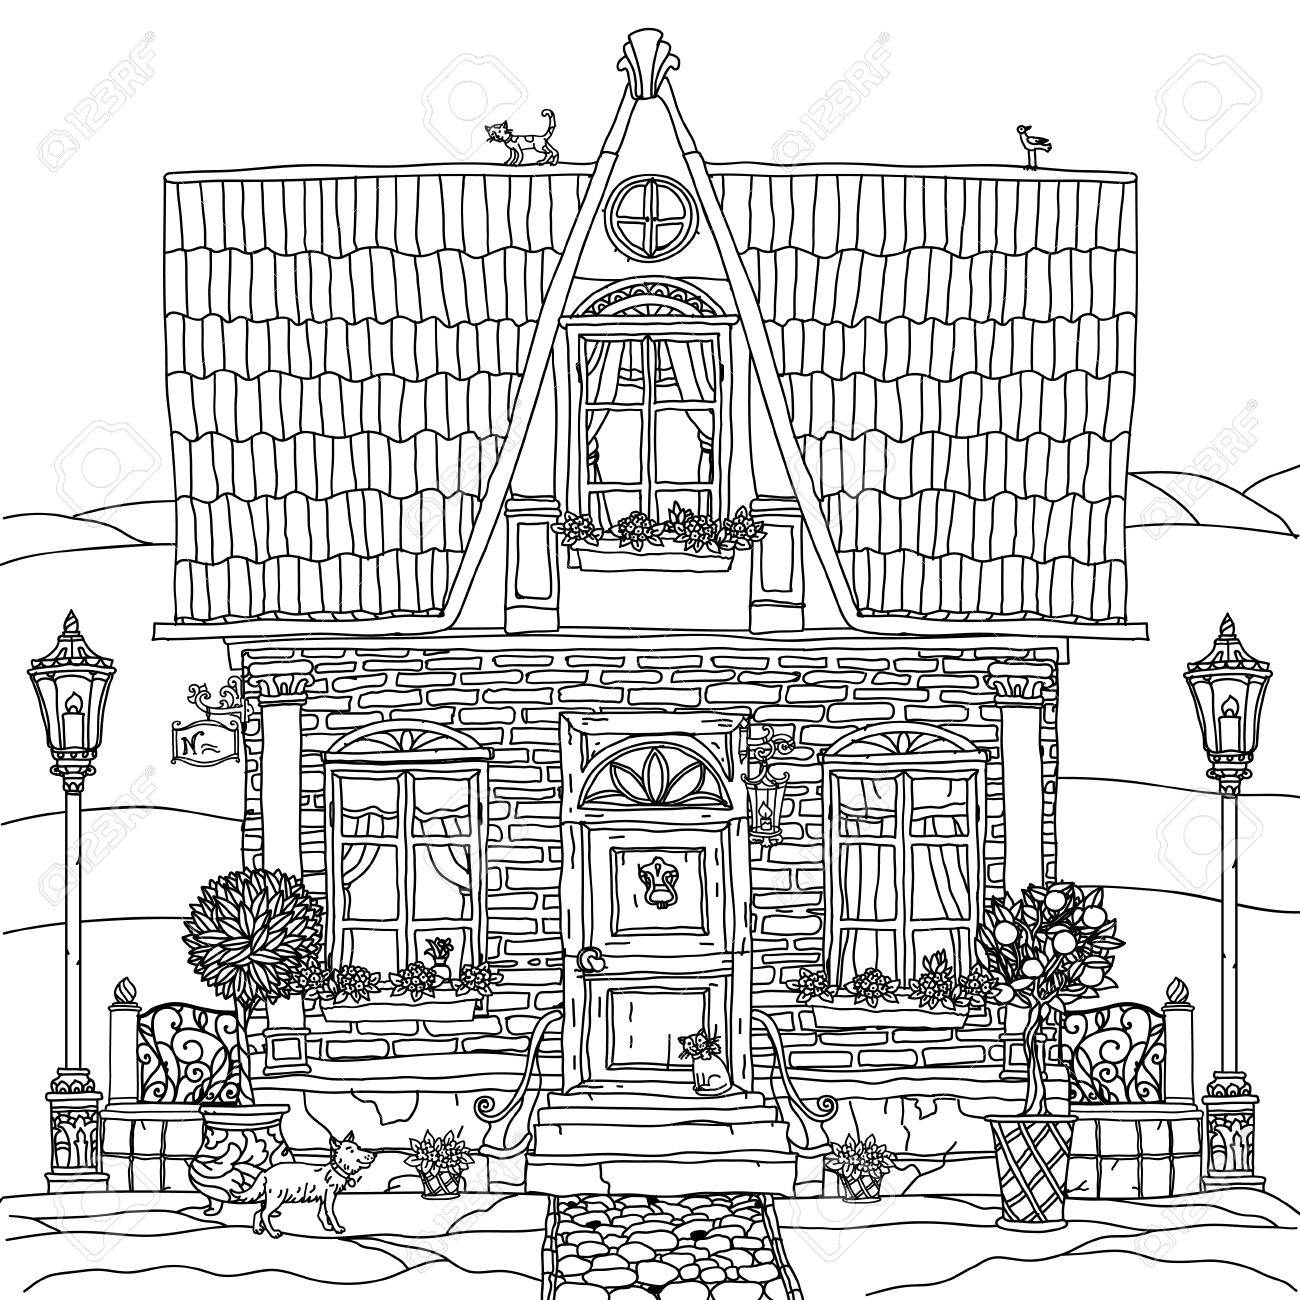 Frontage Of A House With Flowers Plants Cat And Dog For Adult Coloring Book